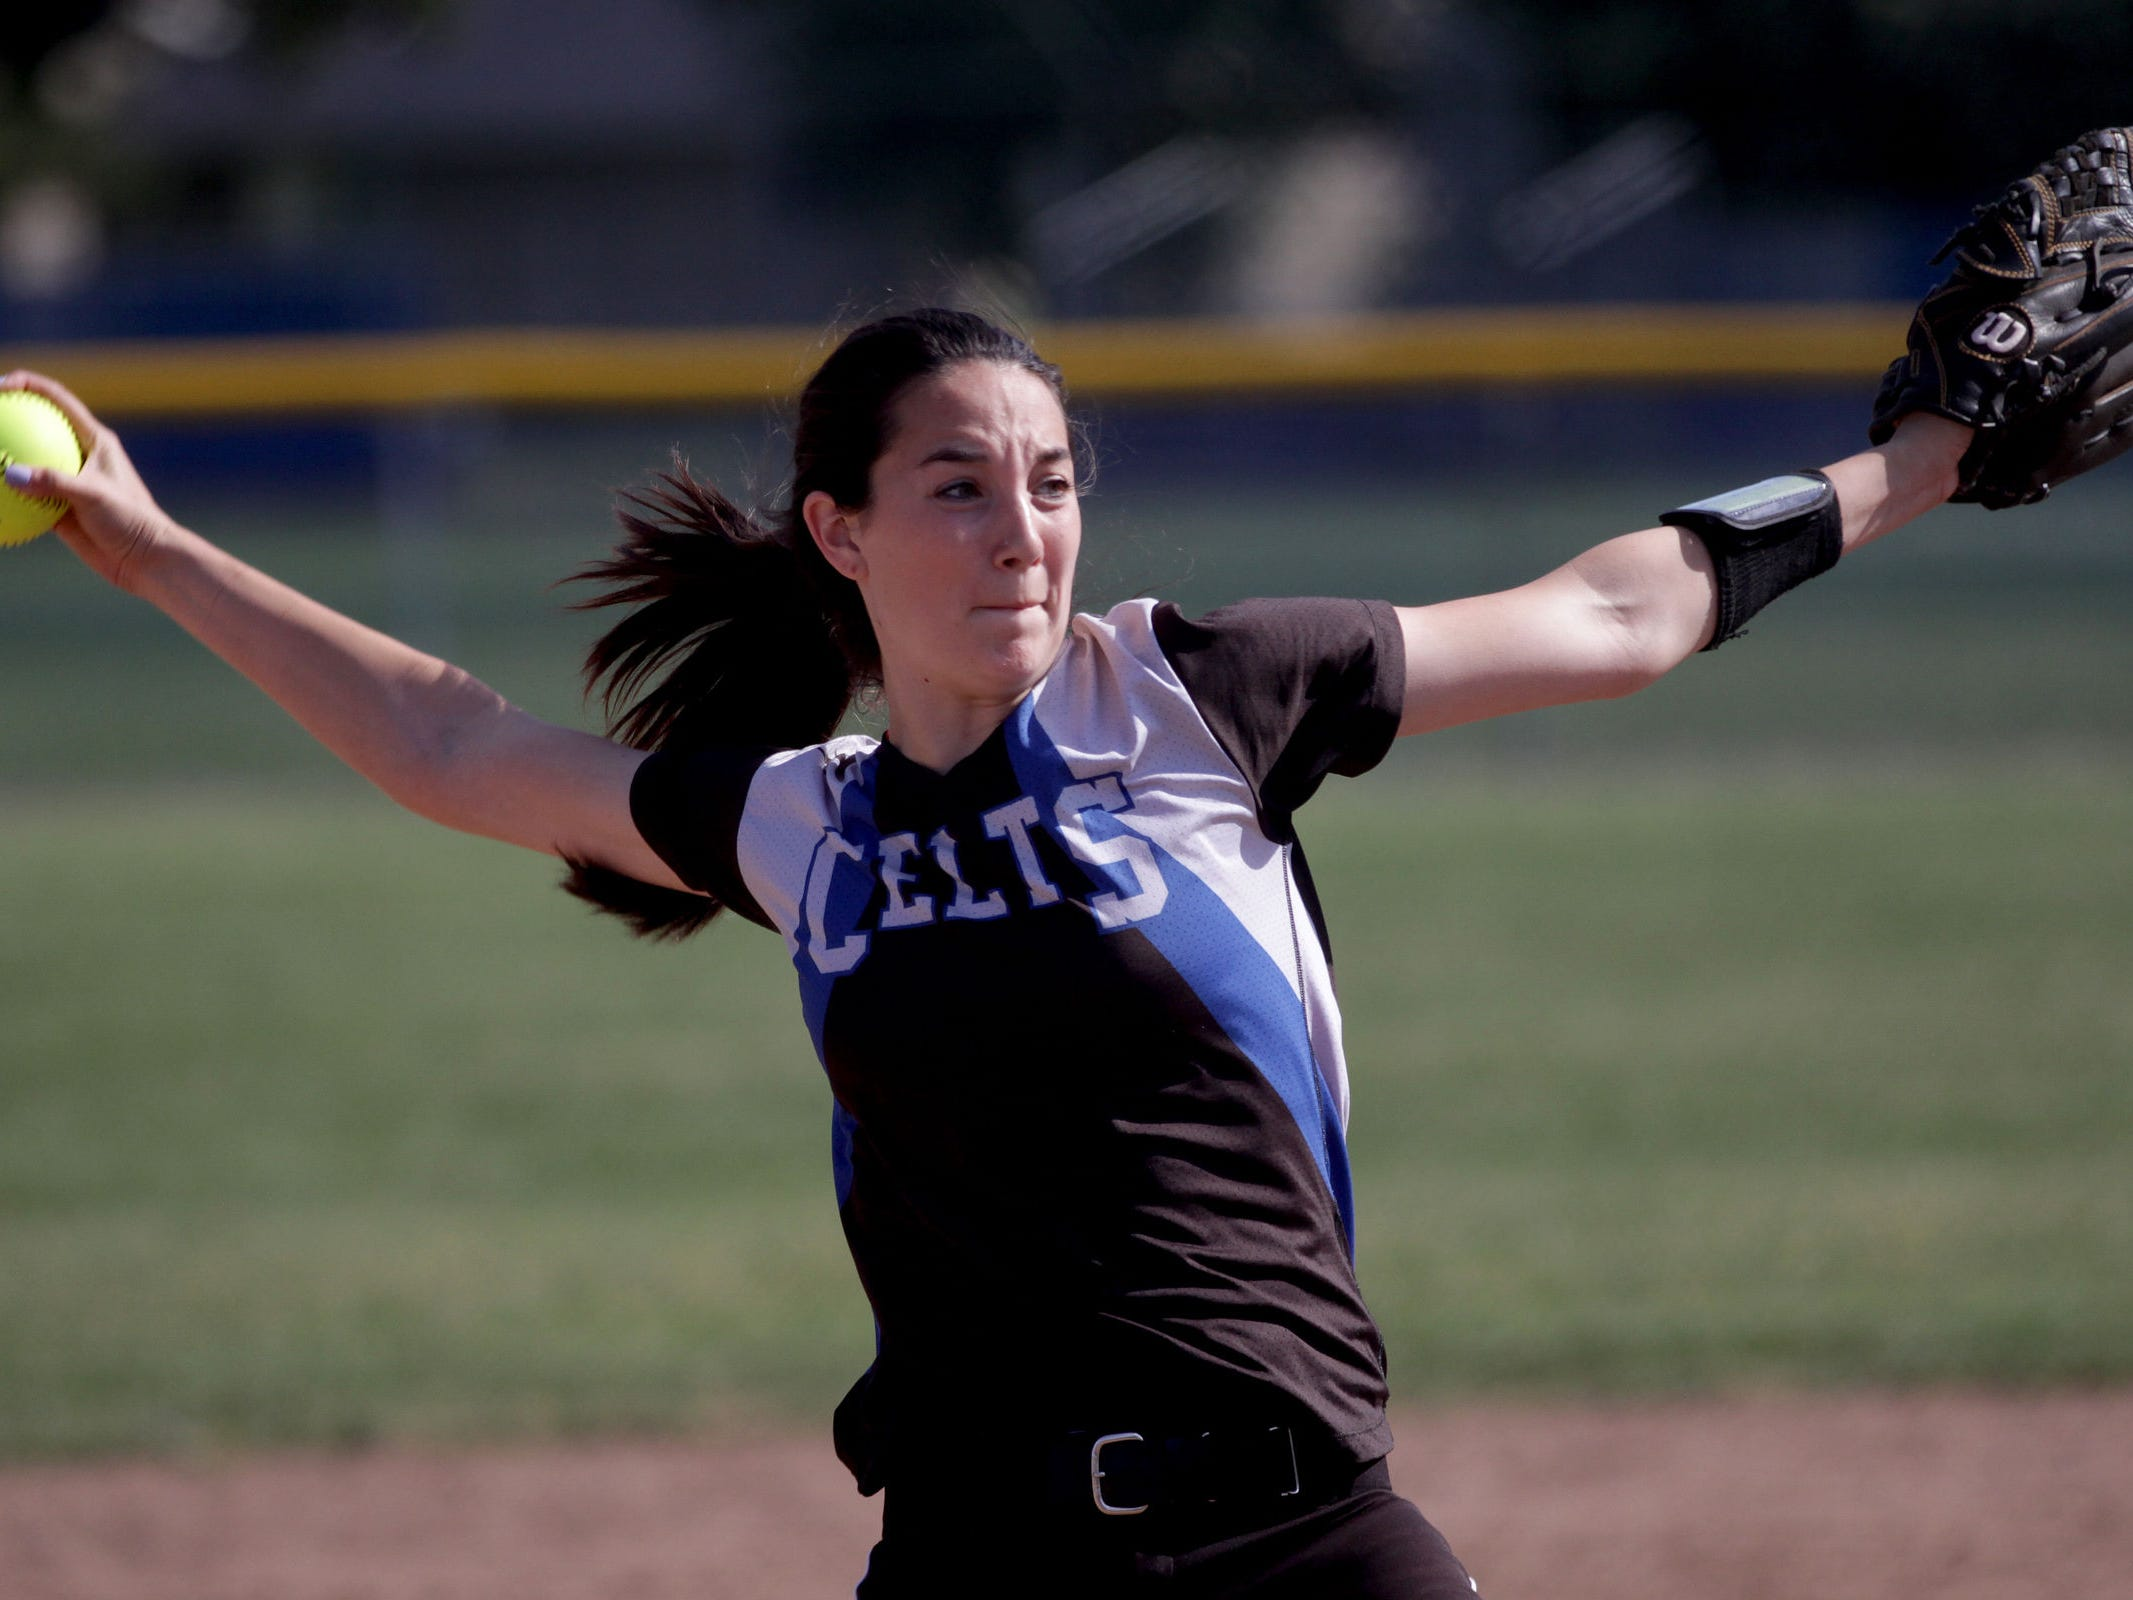 McNary's Megan Ulrey (26) pitches in the Gresham vs. McNary softball game, in the first round of the OSAA class 6A state playoffs, at McNary High School in Keizer on Monday, May 25, 2015. McNary won the game 11-7.